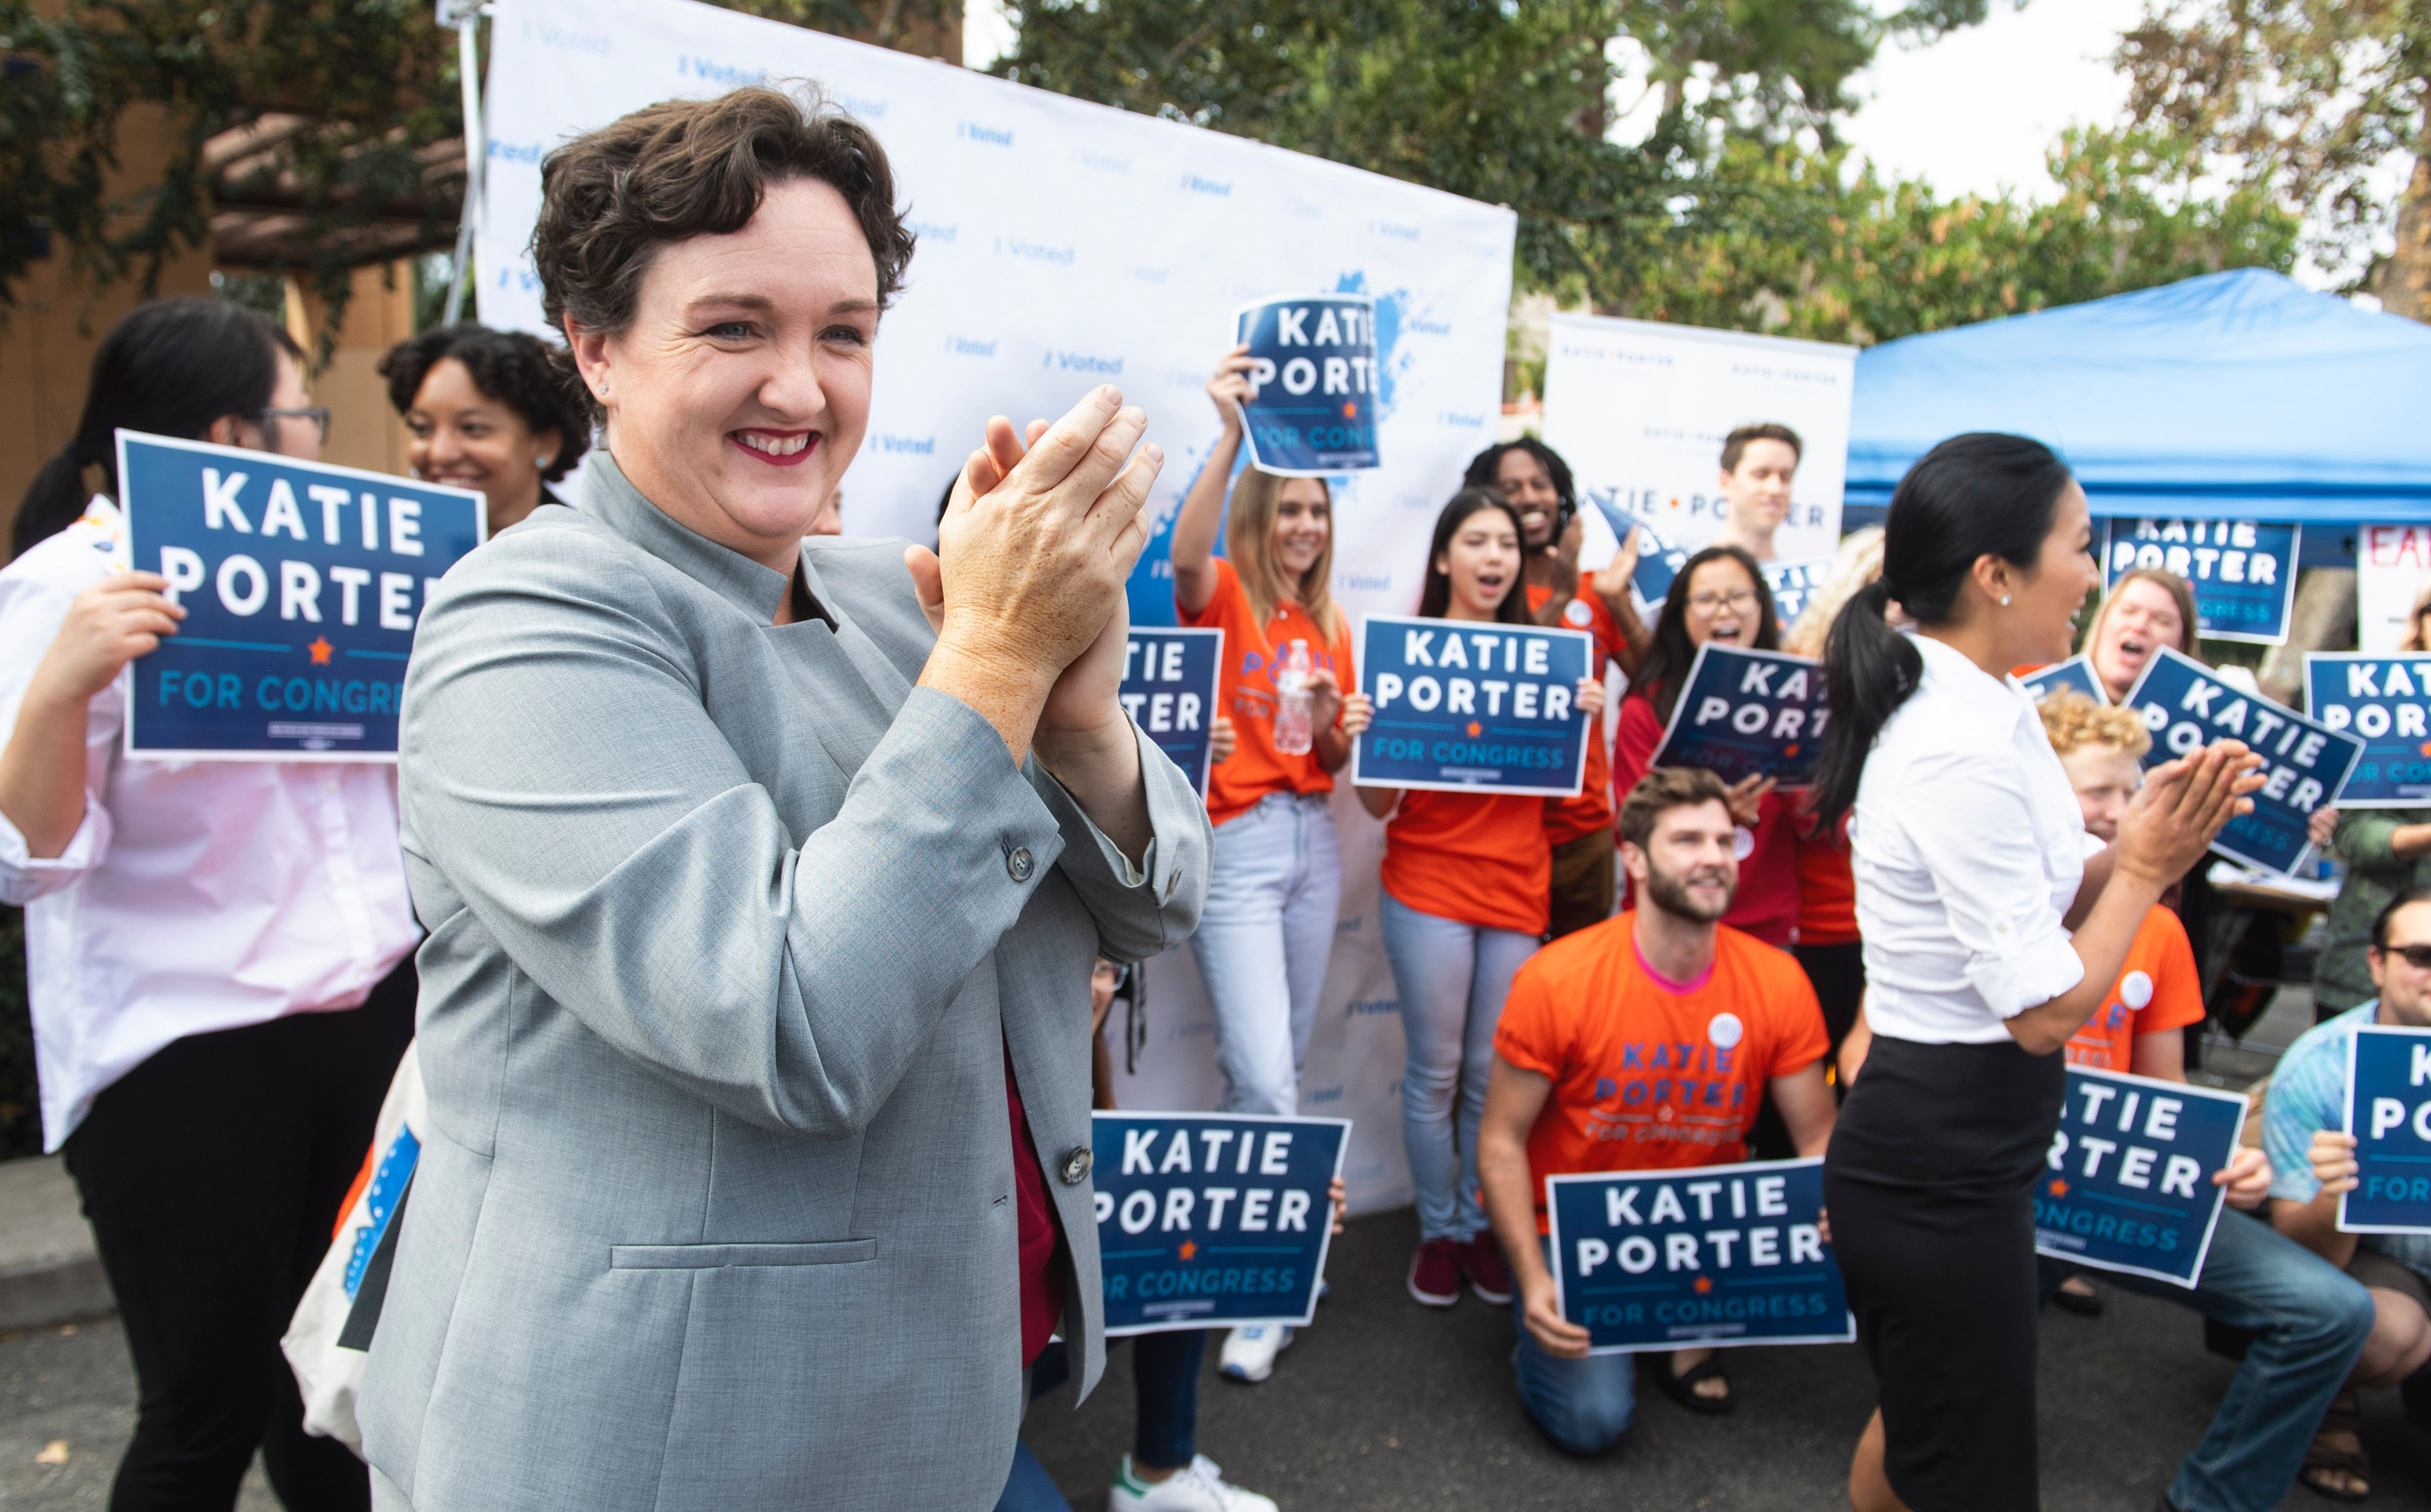 IRVINE, CA - OCTOBER 30: Katie Porter, who is running against Mimi Walters for the state congressional seat in the 45th district, speaks to supporters at the University of California, Irvine on Tuesday, October 30, 2018. Porter was voting early at a portable poll location at the university. (Photo by Paul Bersebach/Digital First Media/Orange County Register via Getty Images)